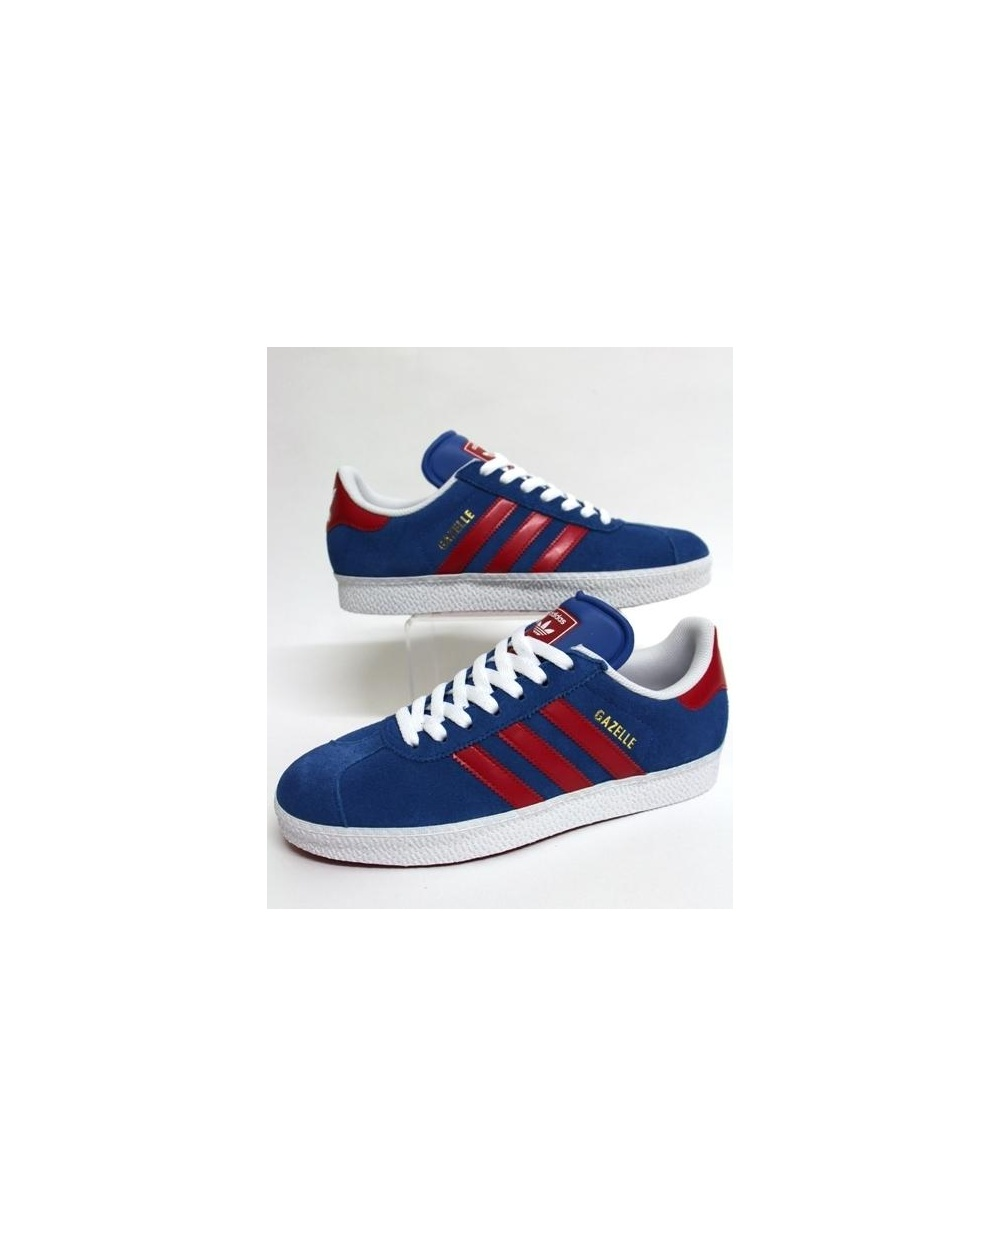 adidas gazelle blue red 7c8ce03939e5